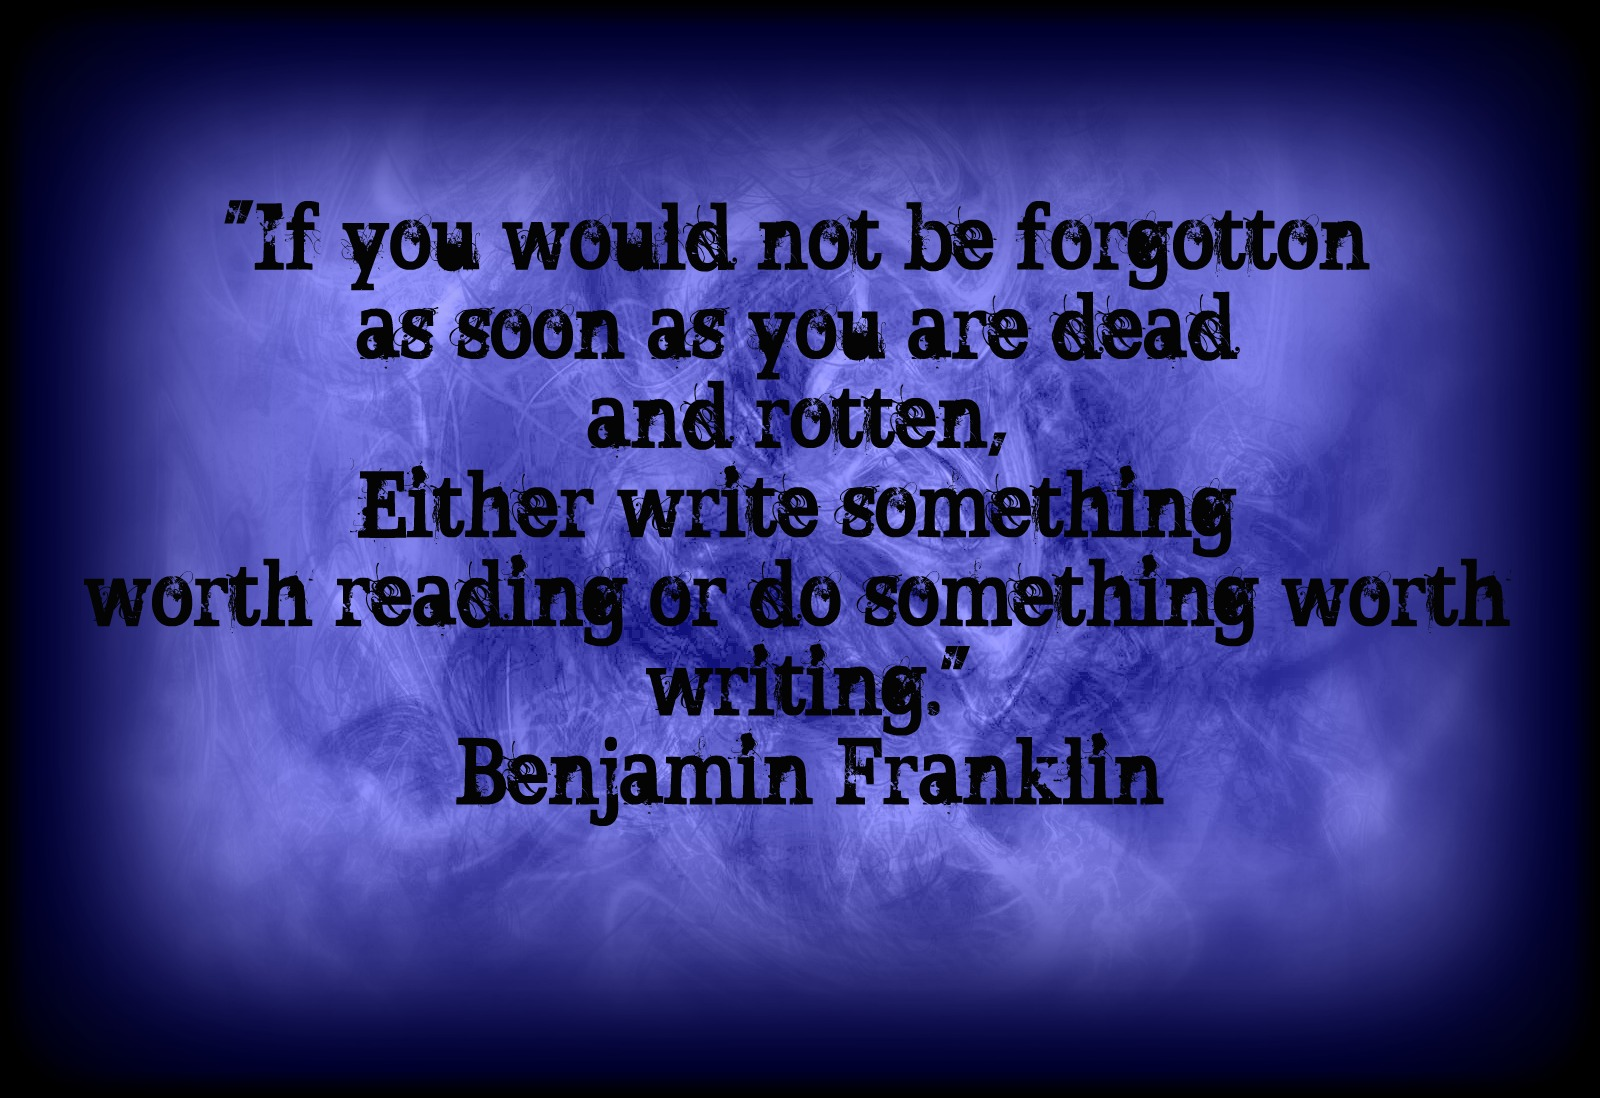 What does the Benjamin Franklin Effect have to do with Benjamin Franklin?